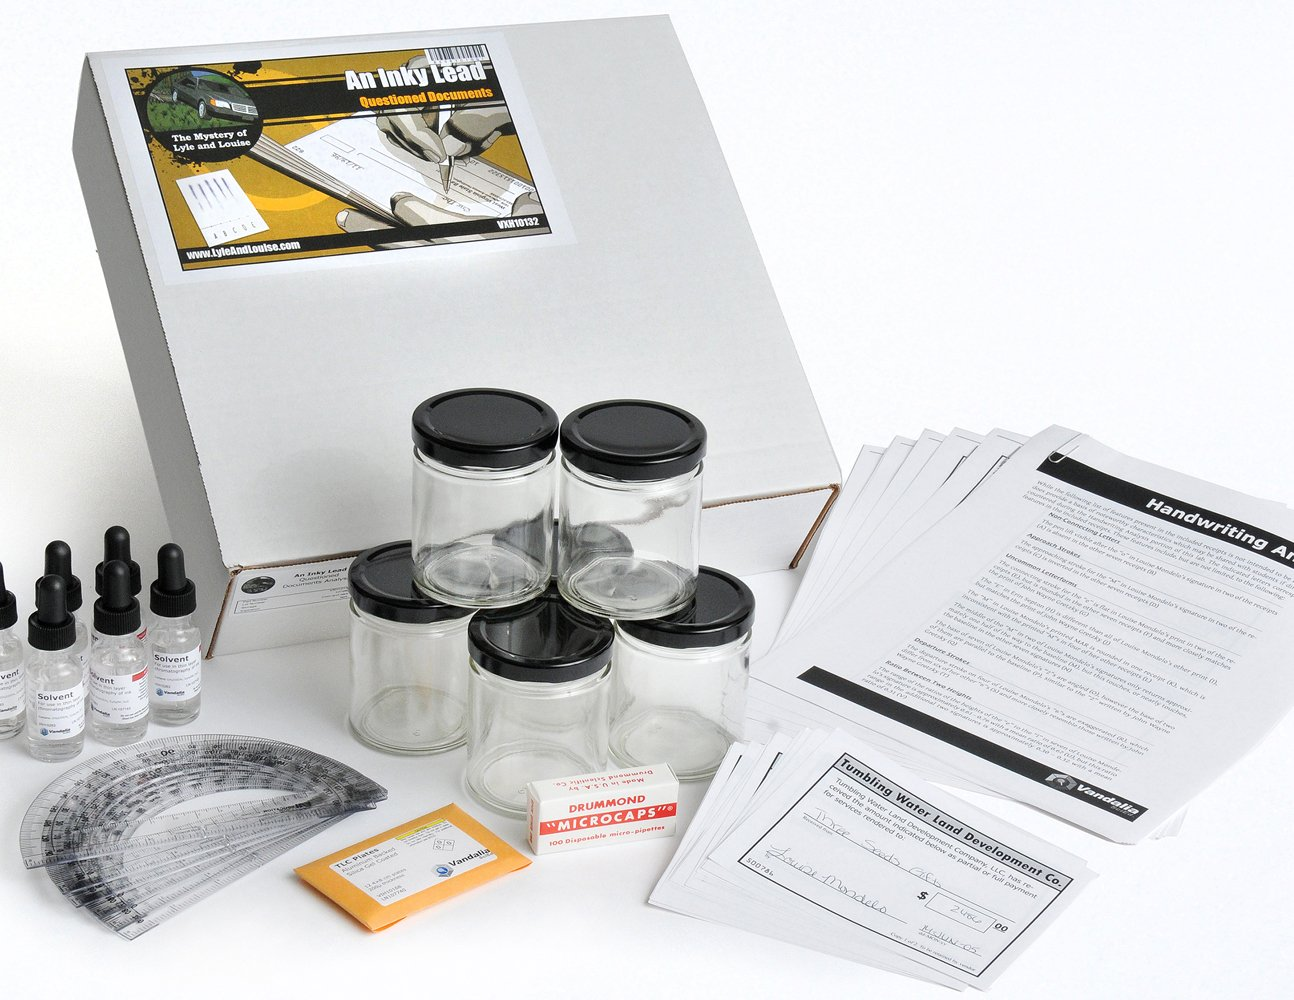 Crosscutting Concepts VXH10132 Lyle and Louise An Inky Lead Questioned Documents Analysis Kit